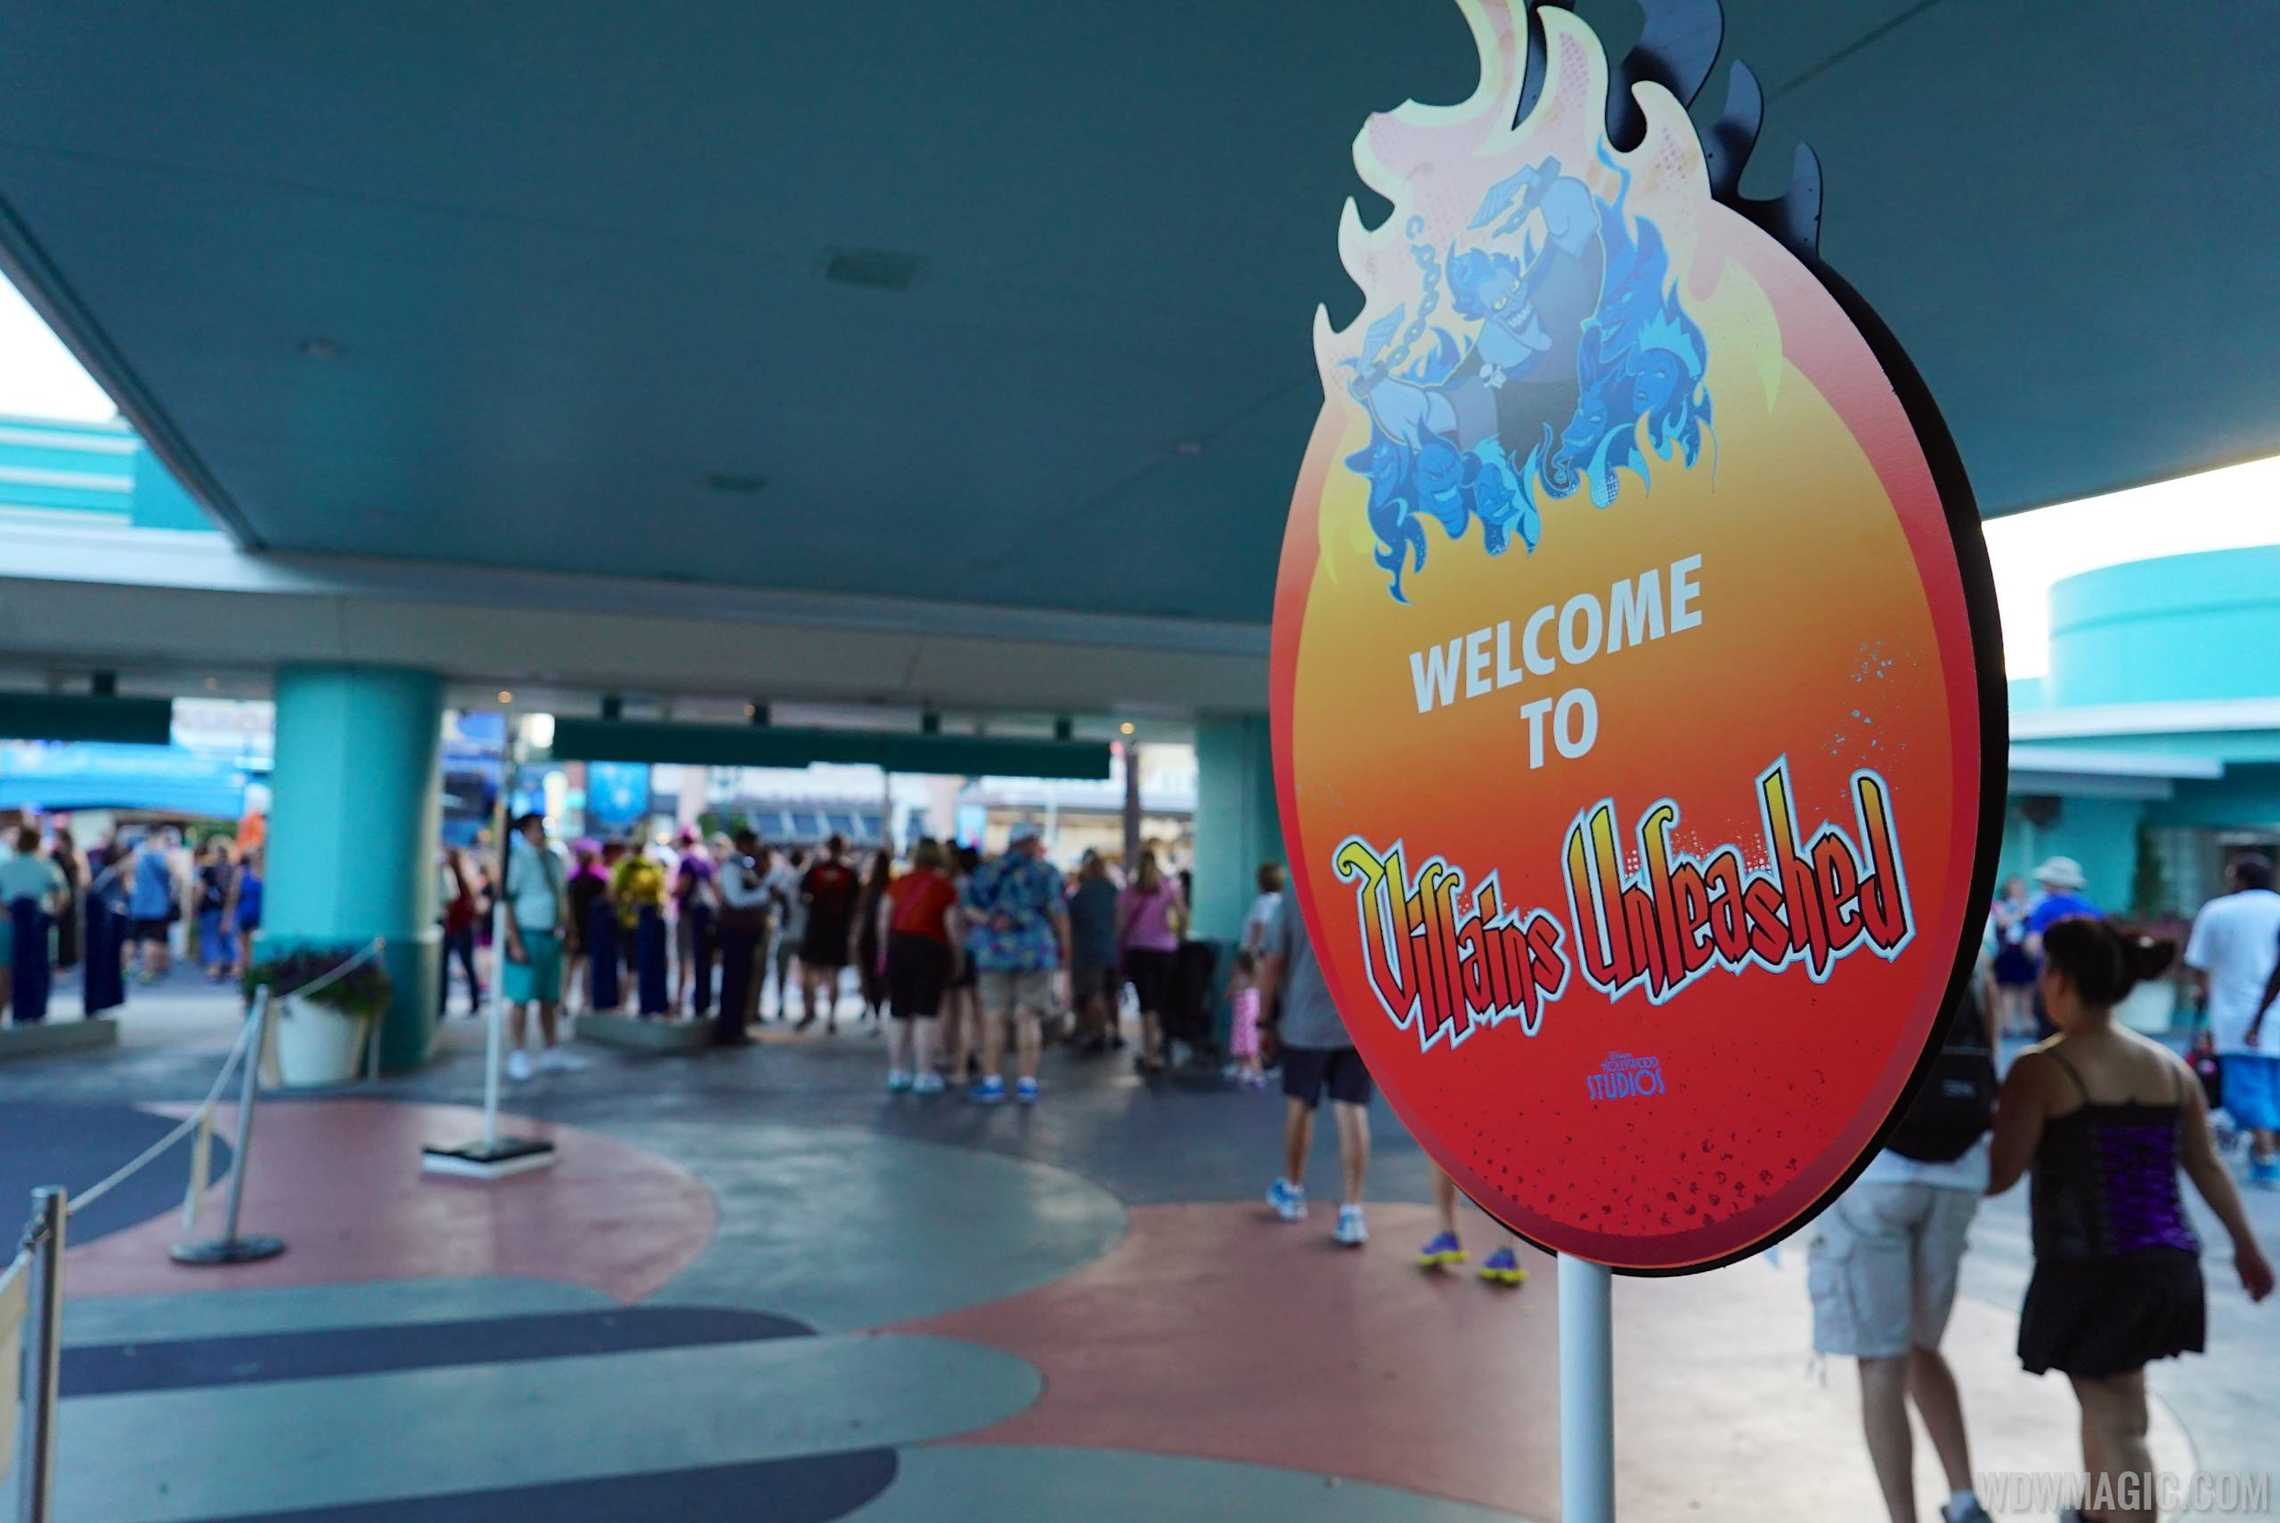 Villains Unleashed - Main Entrance signage